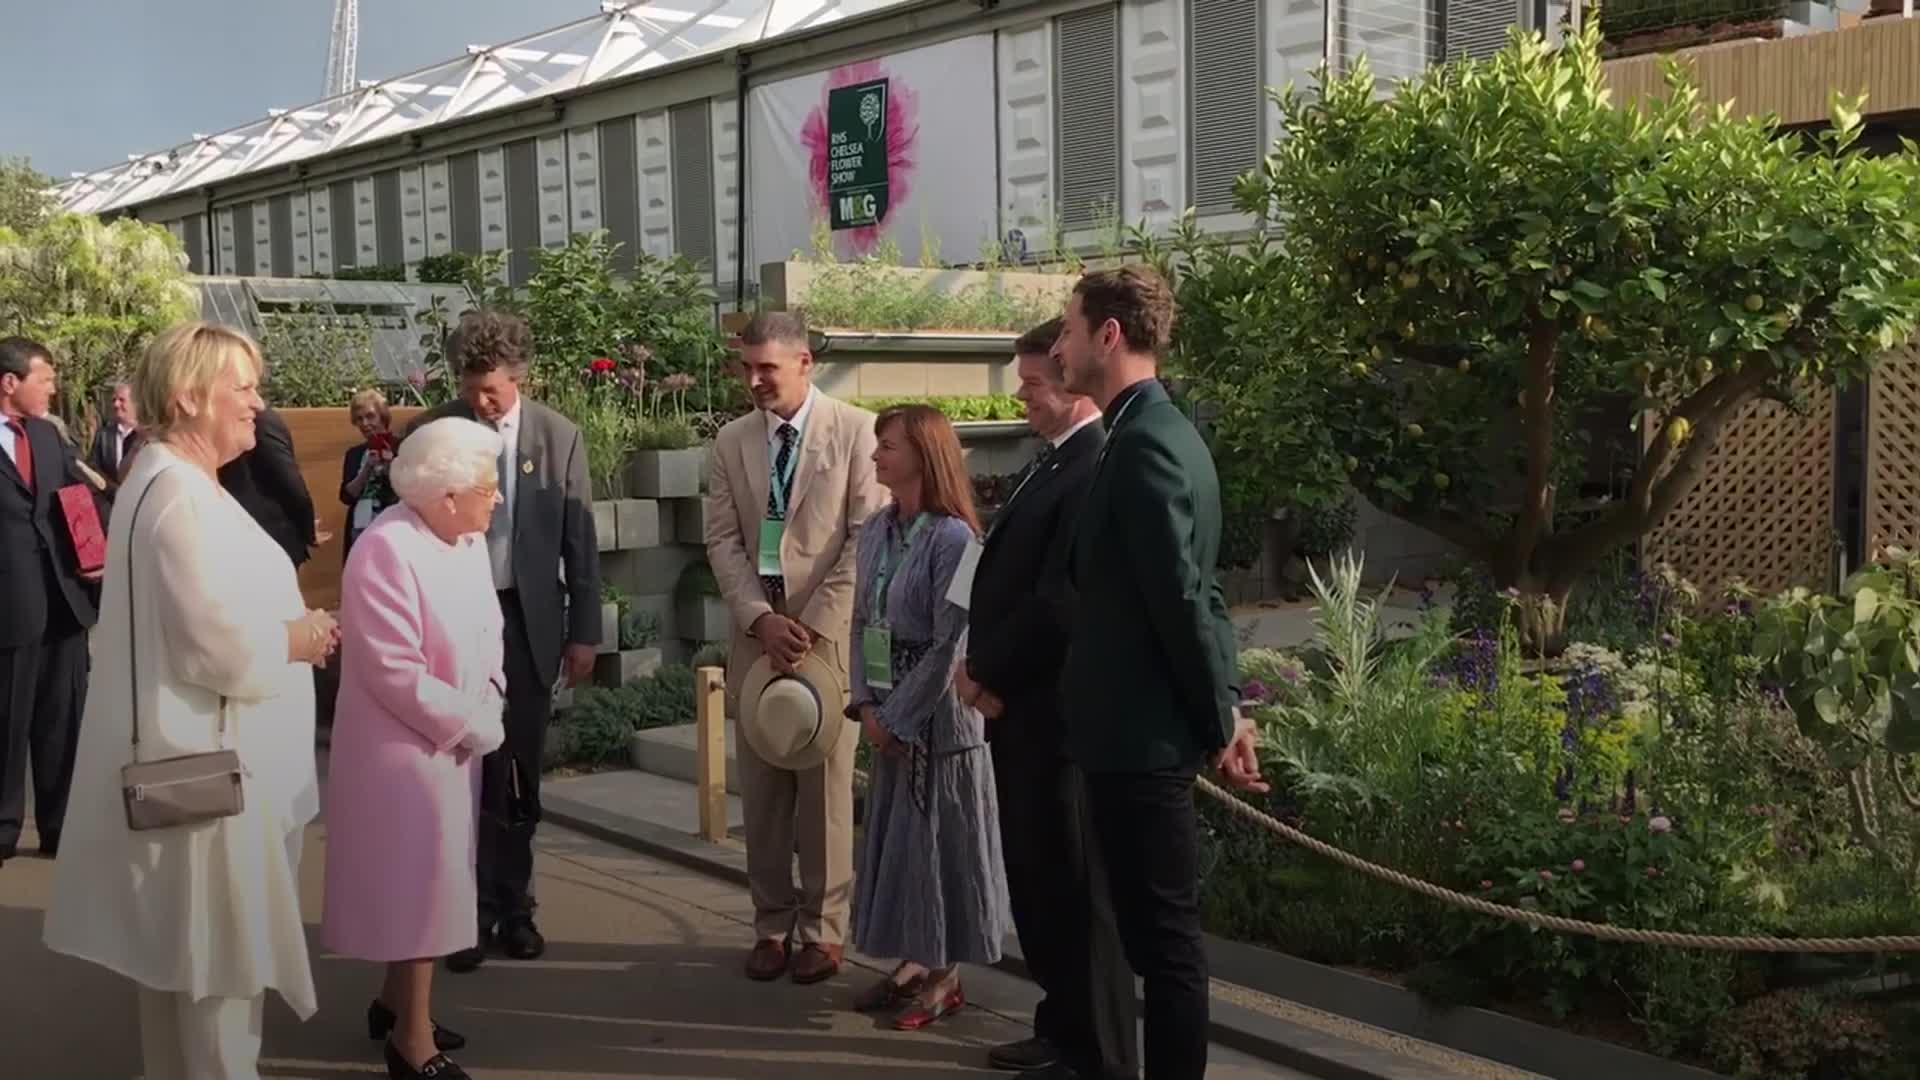 Queen visits Chelsea Flower Show in first public